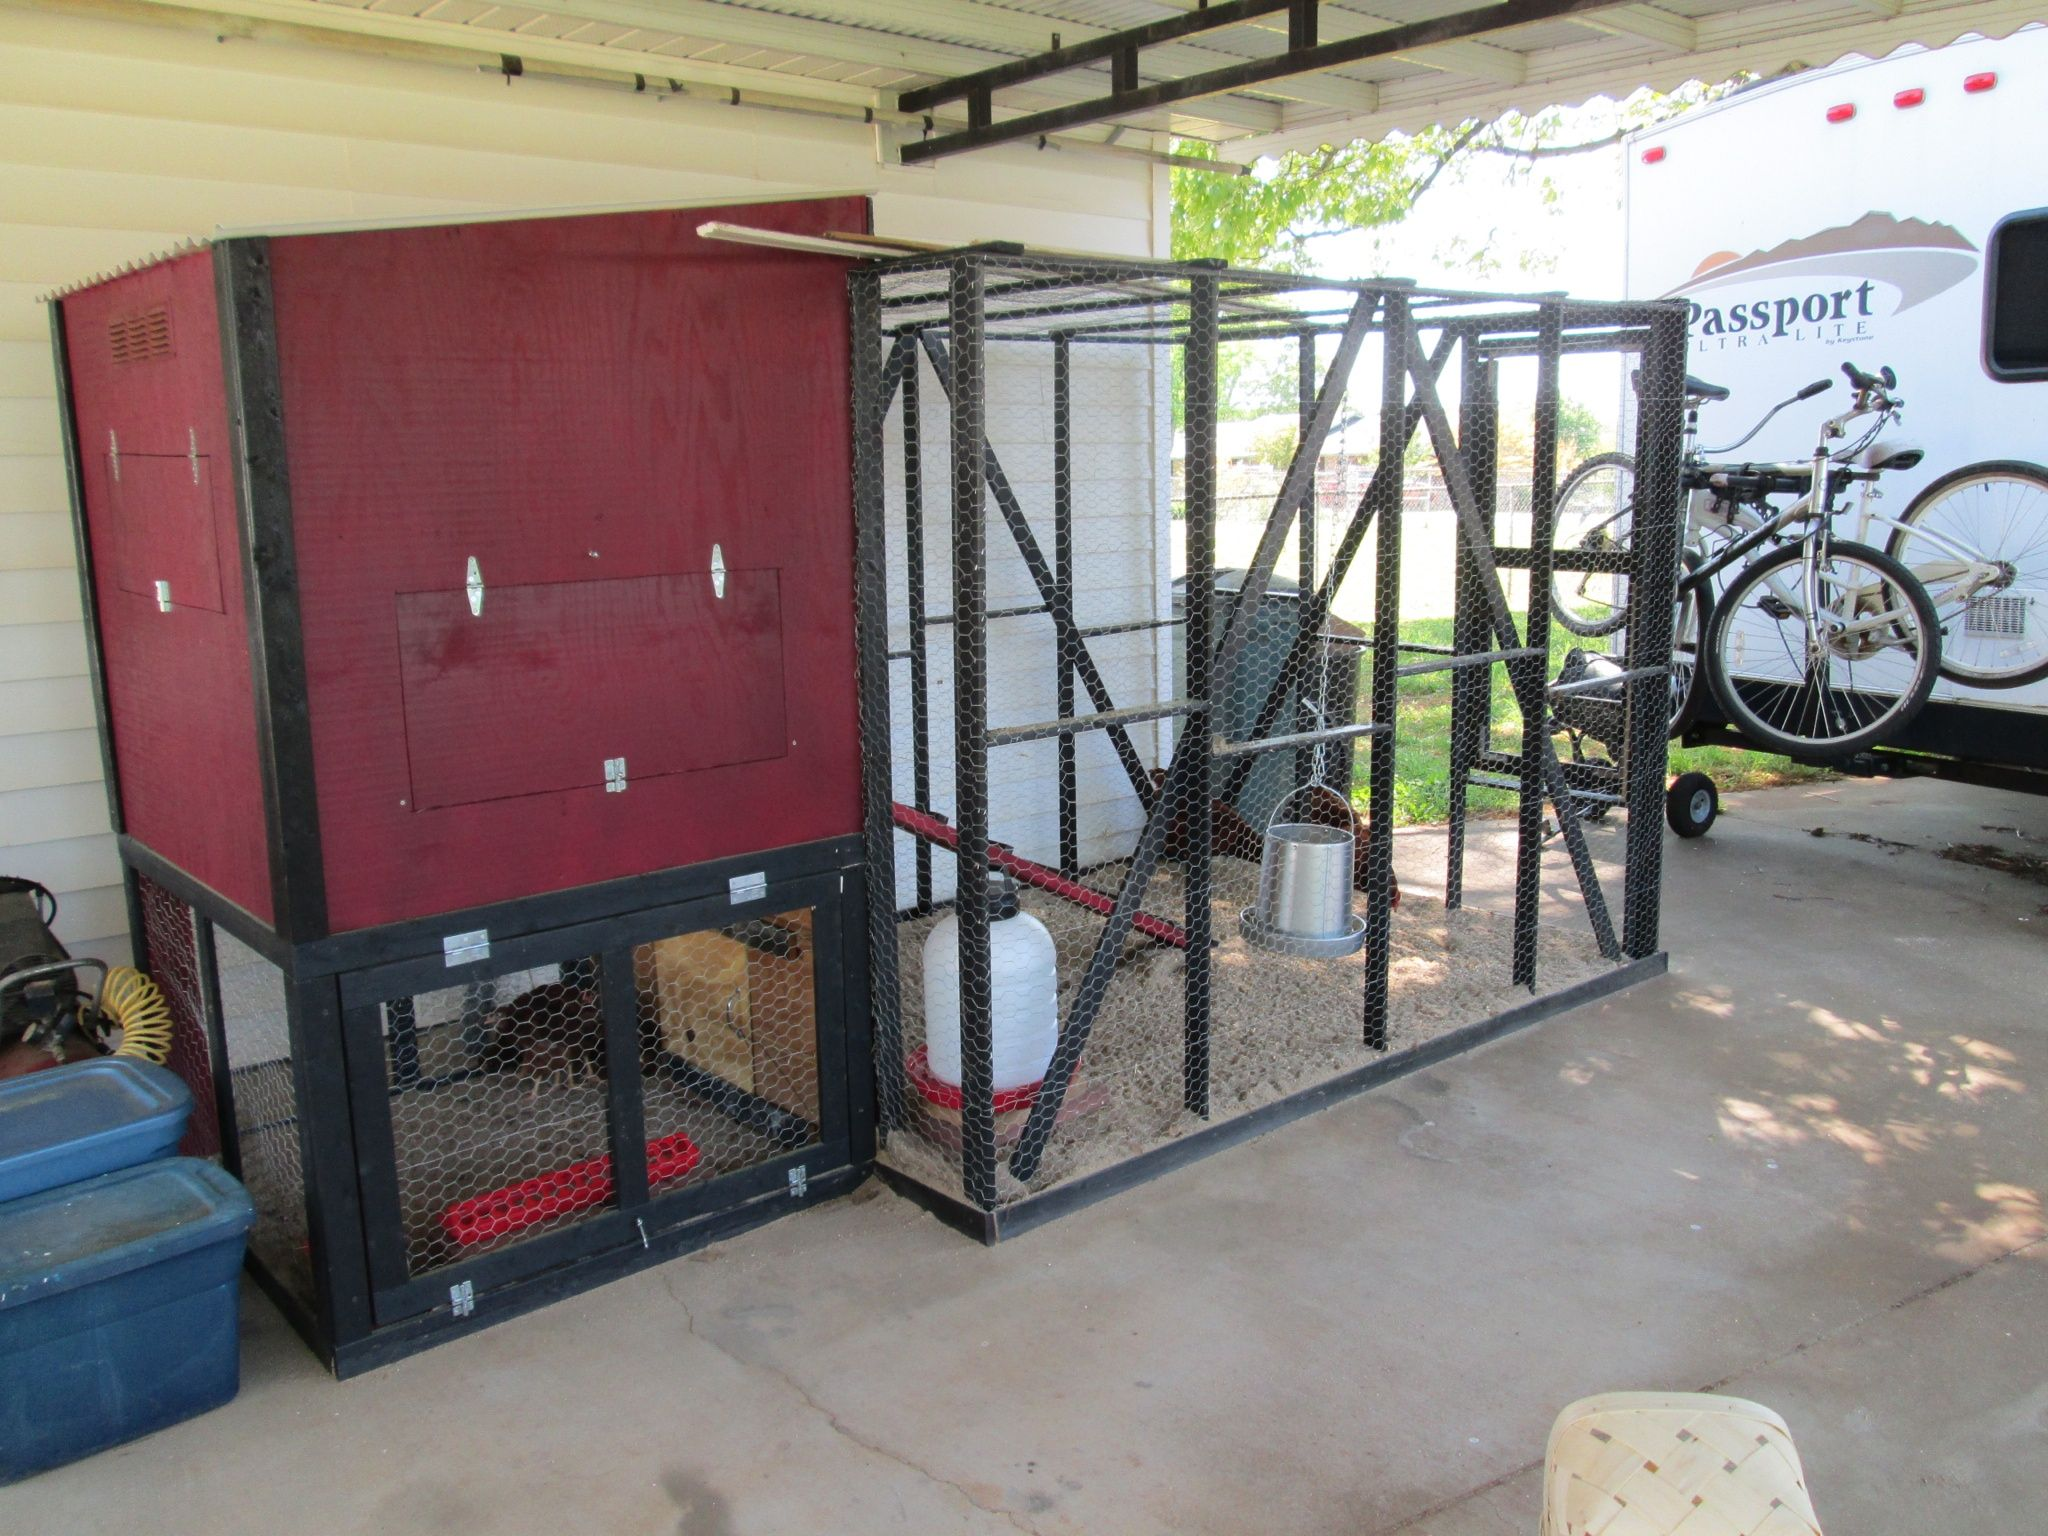 Coop and pen for 6 Rhode Island Red hens. My first experience with chickens.